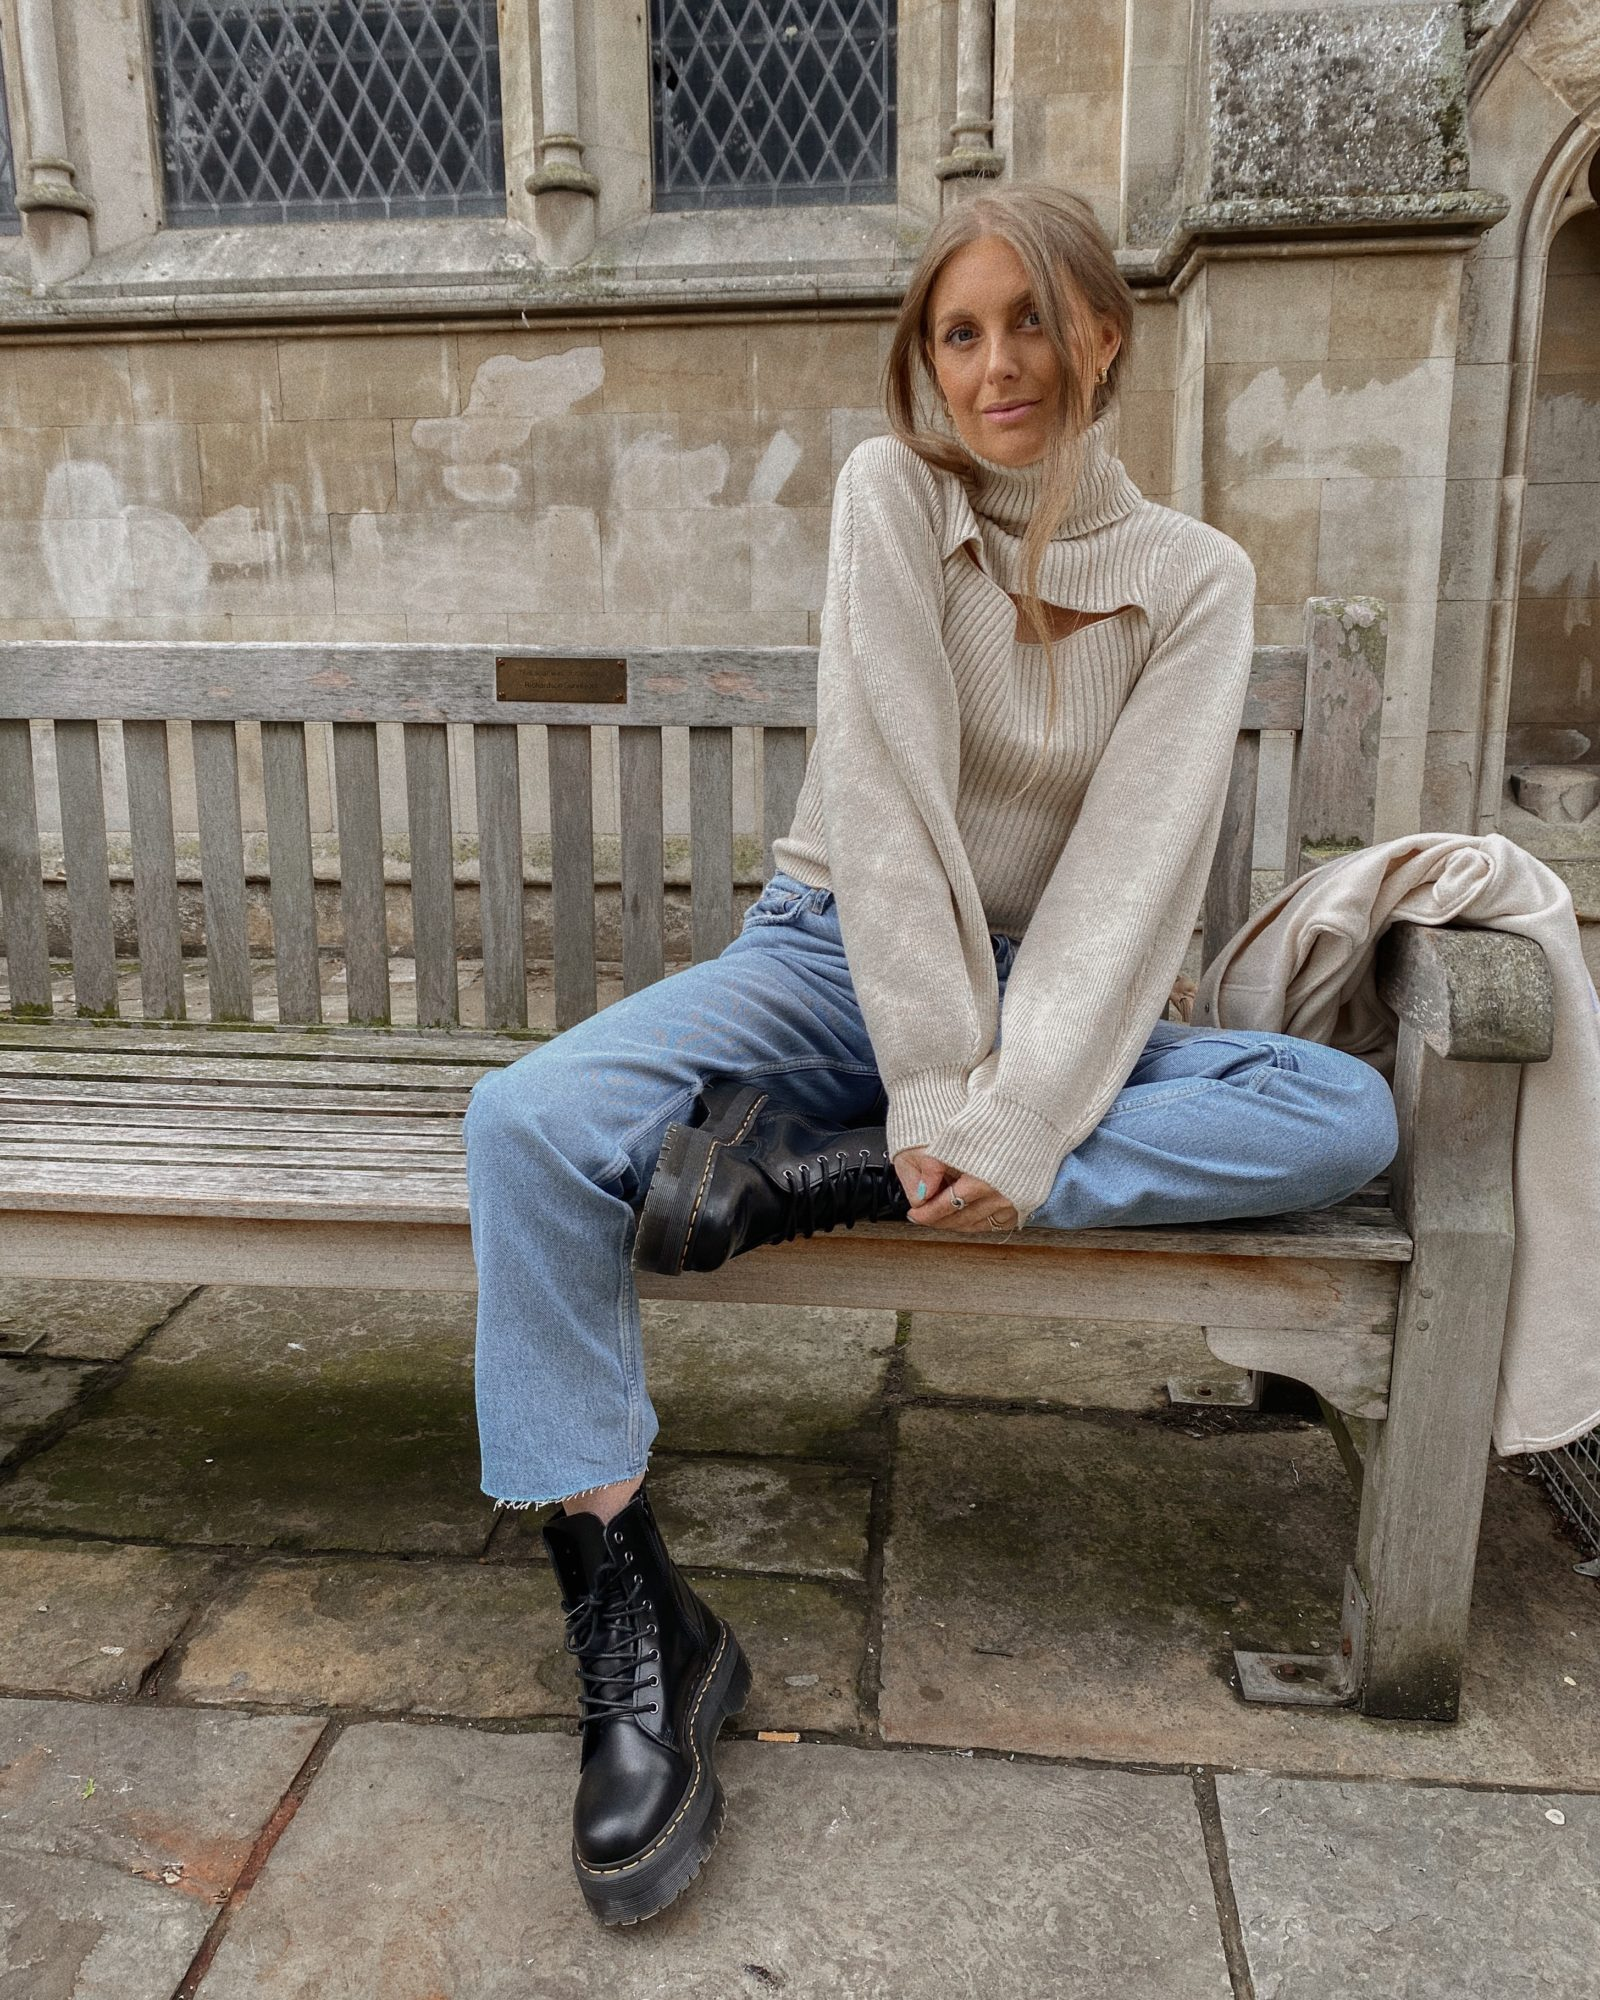 Autumn Knits - Free People Roll Neck Jumper